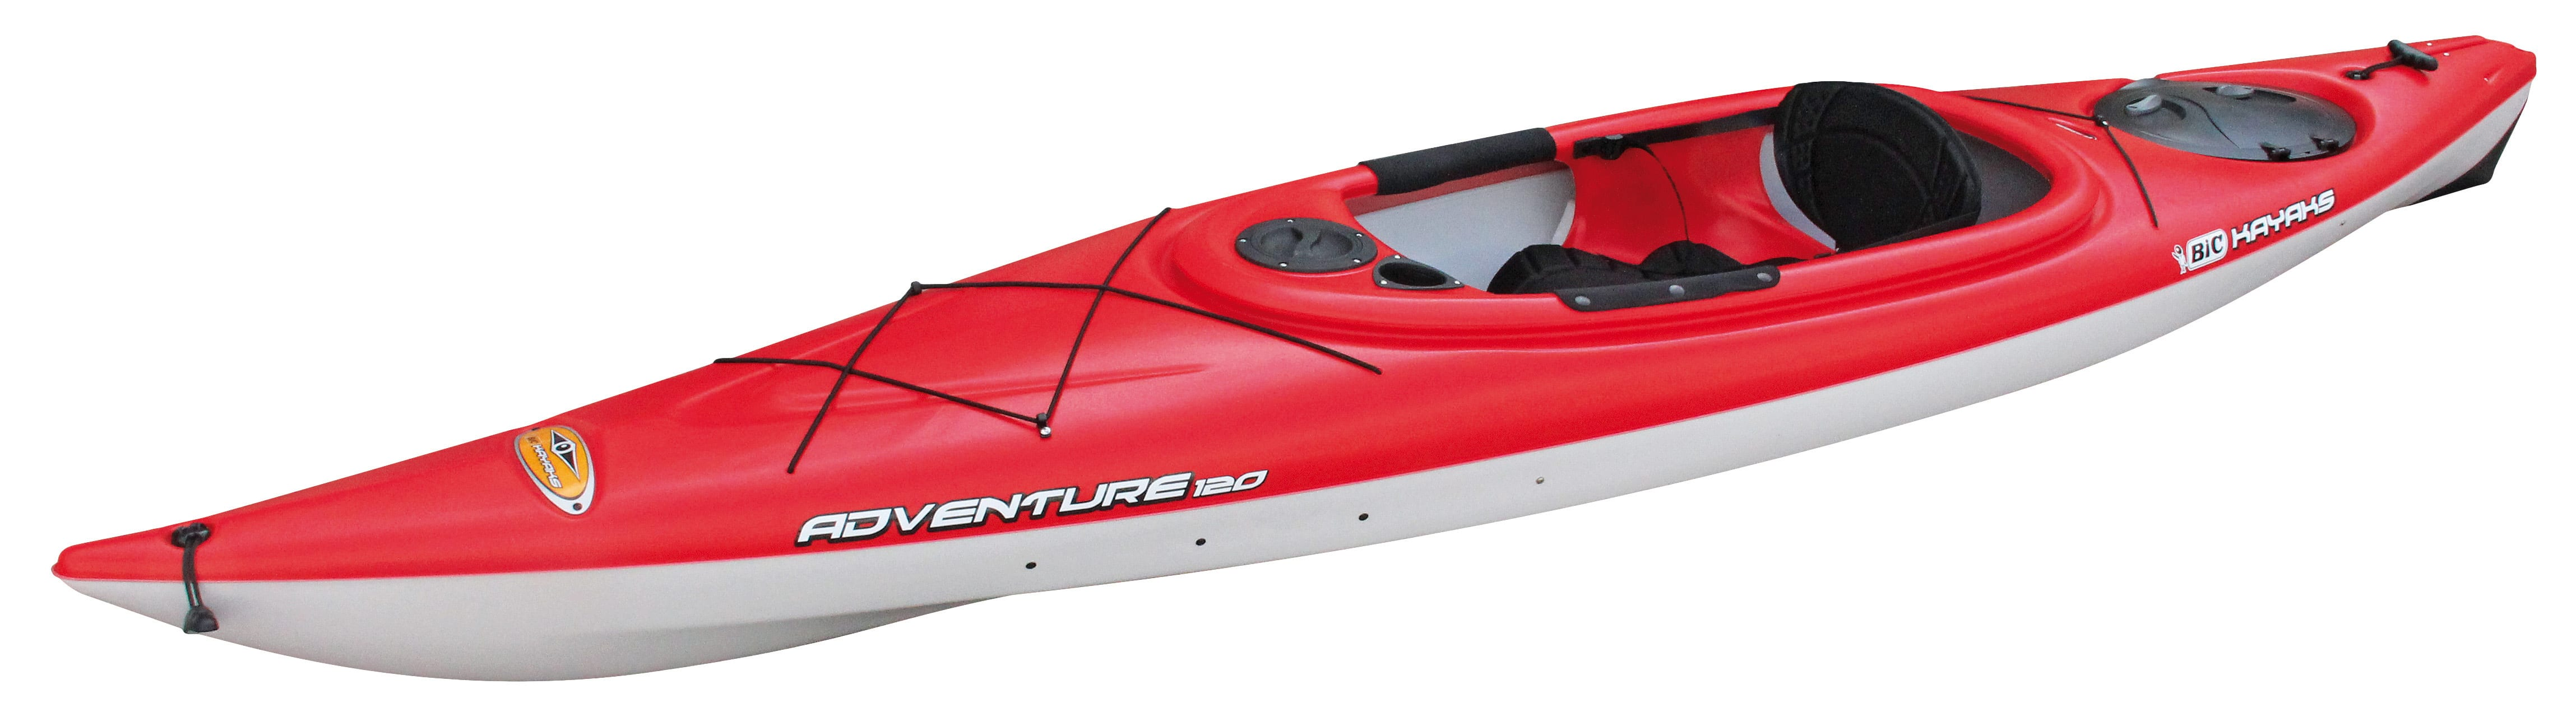 Shop for Bic Adventure 120 Kayak